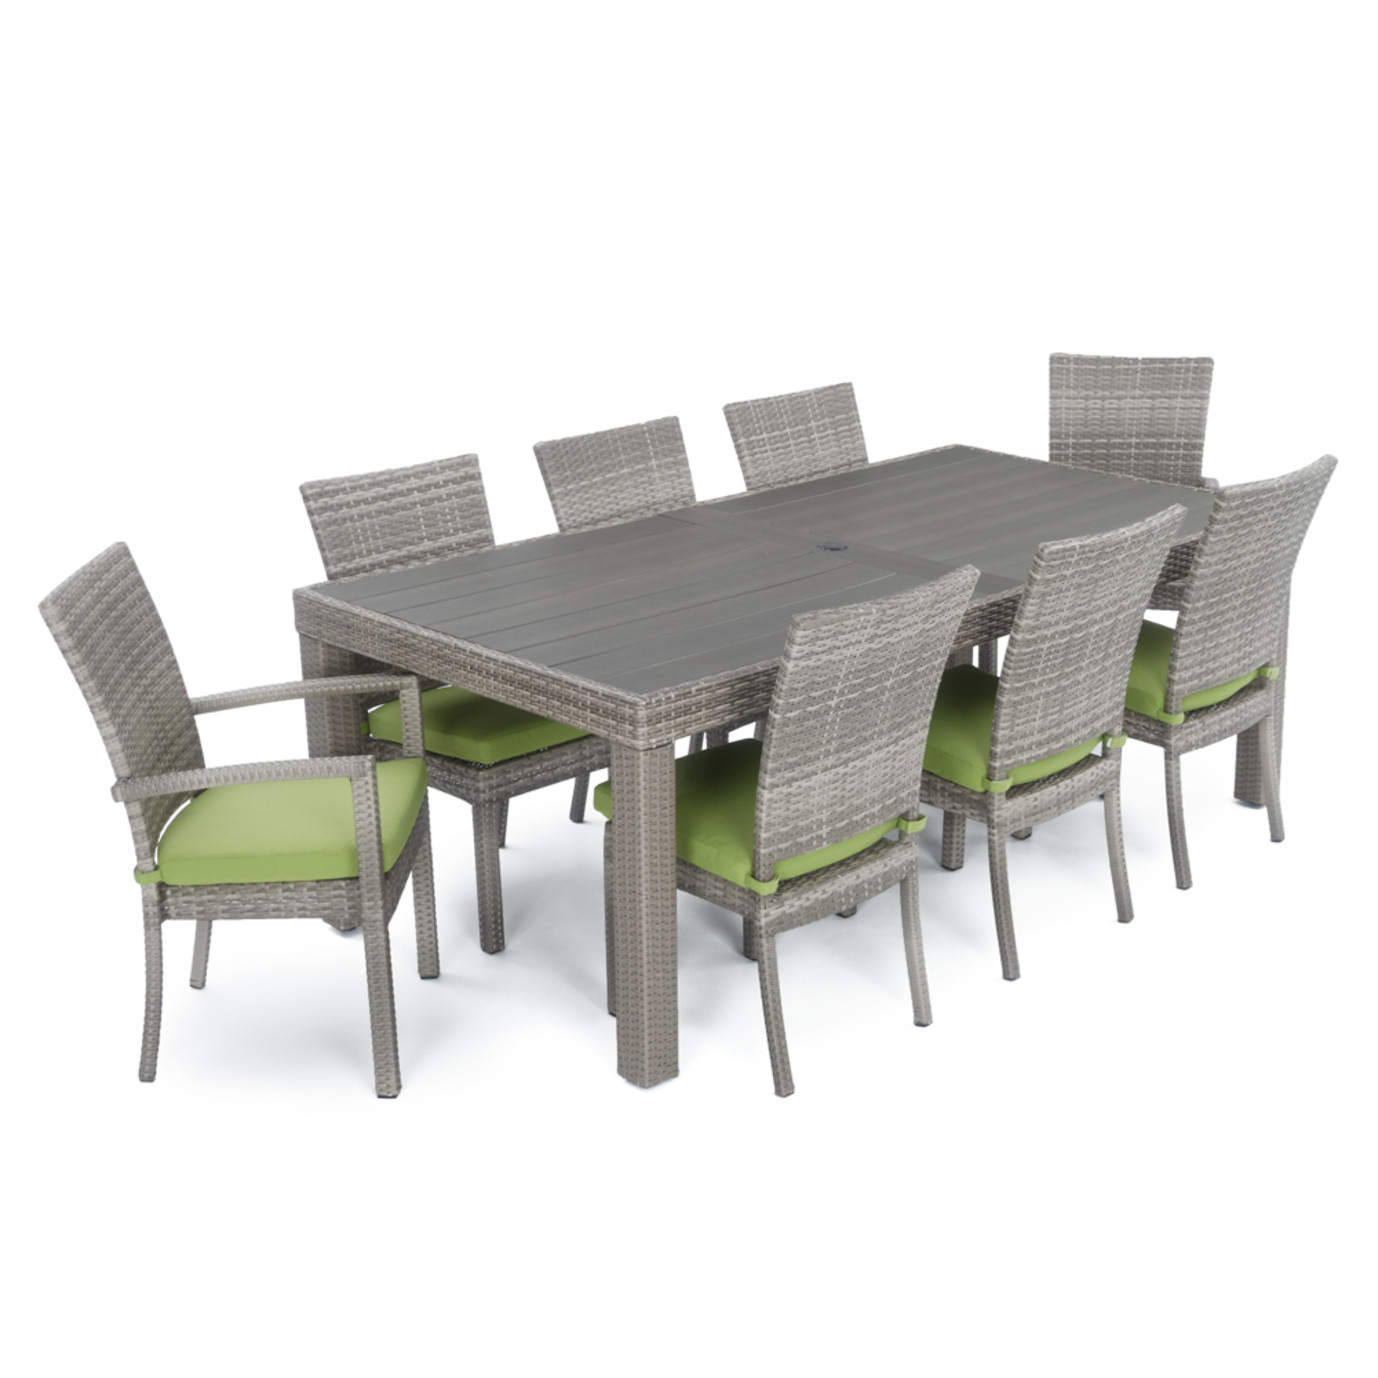 Cannes™ Woven Dining Set - Ginkgo Green